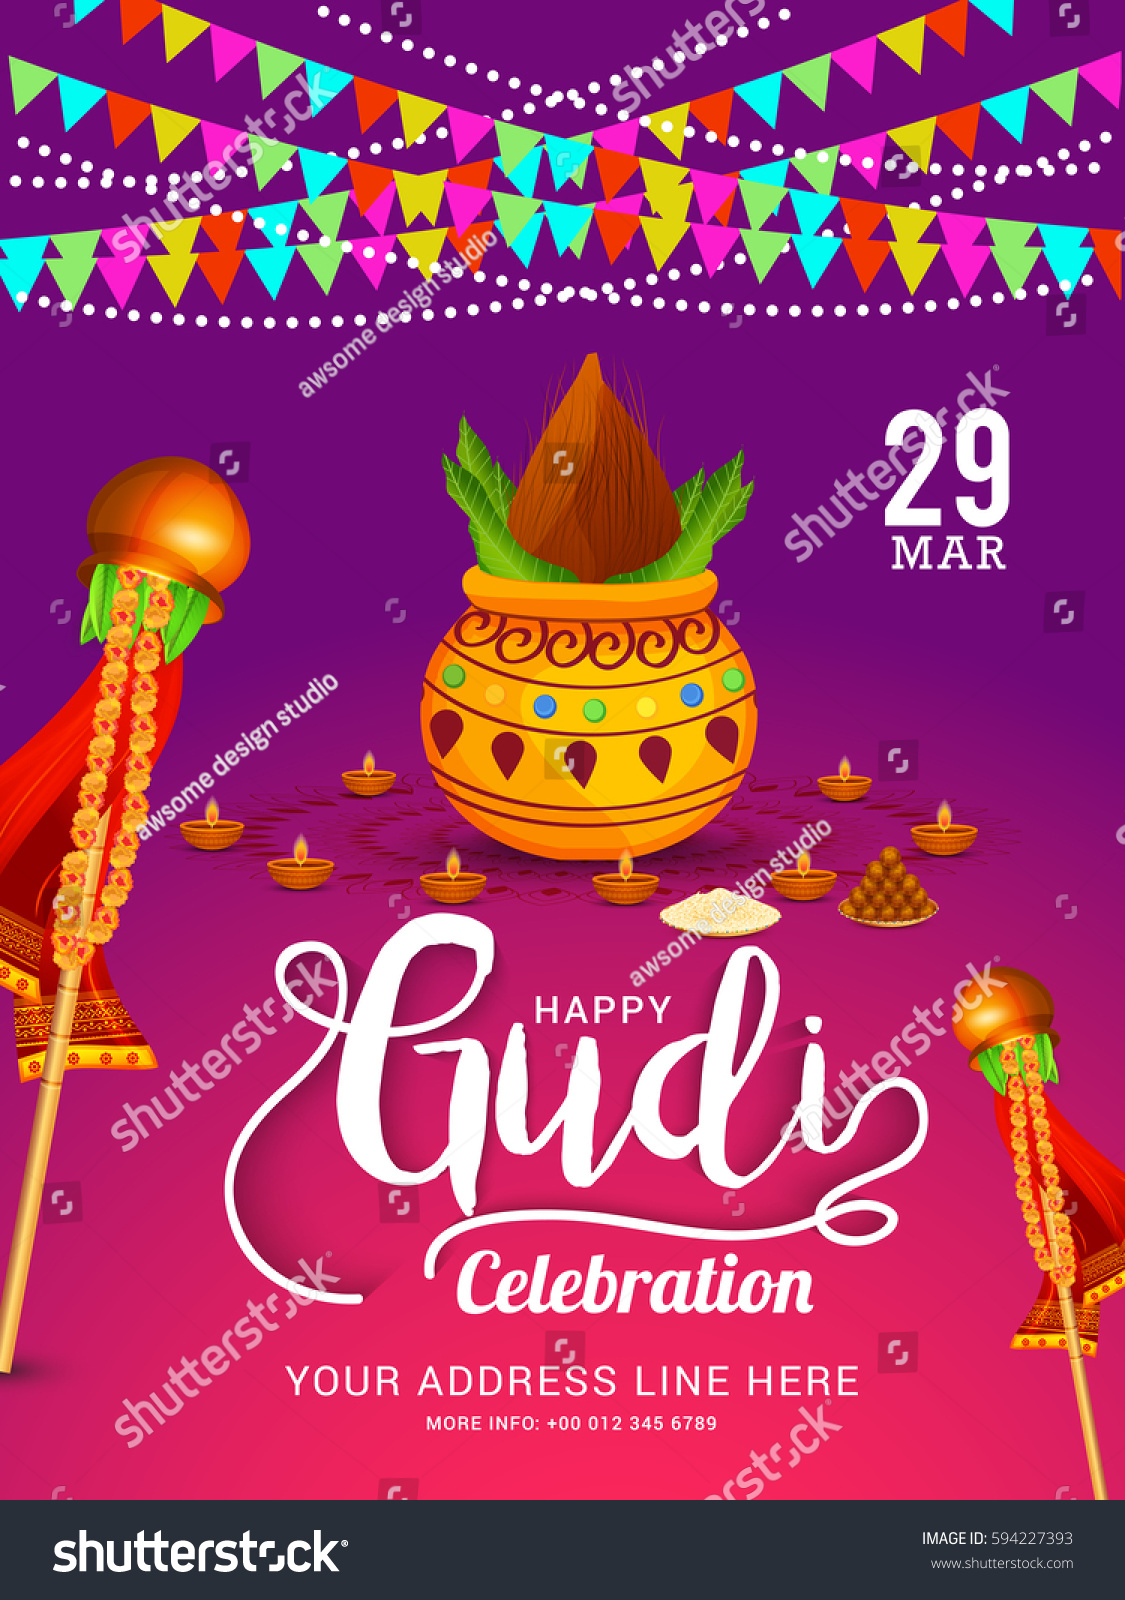 gudi padwa marathi new year celebration invitation background